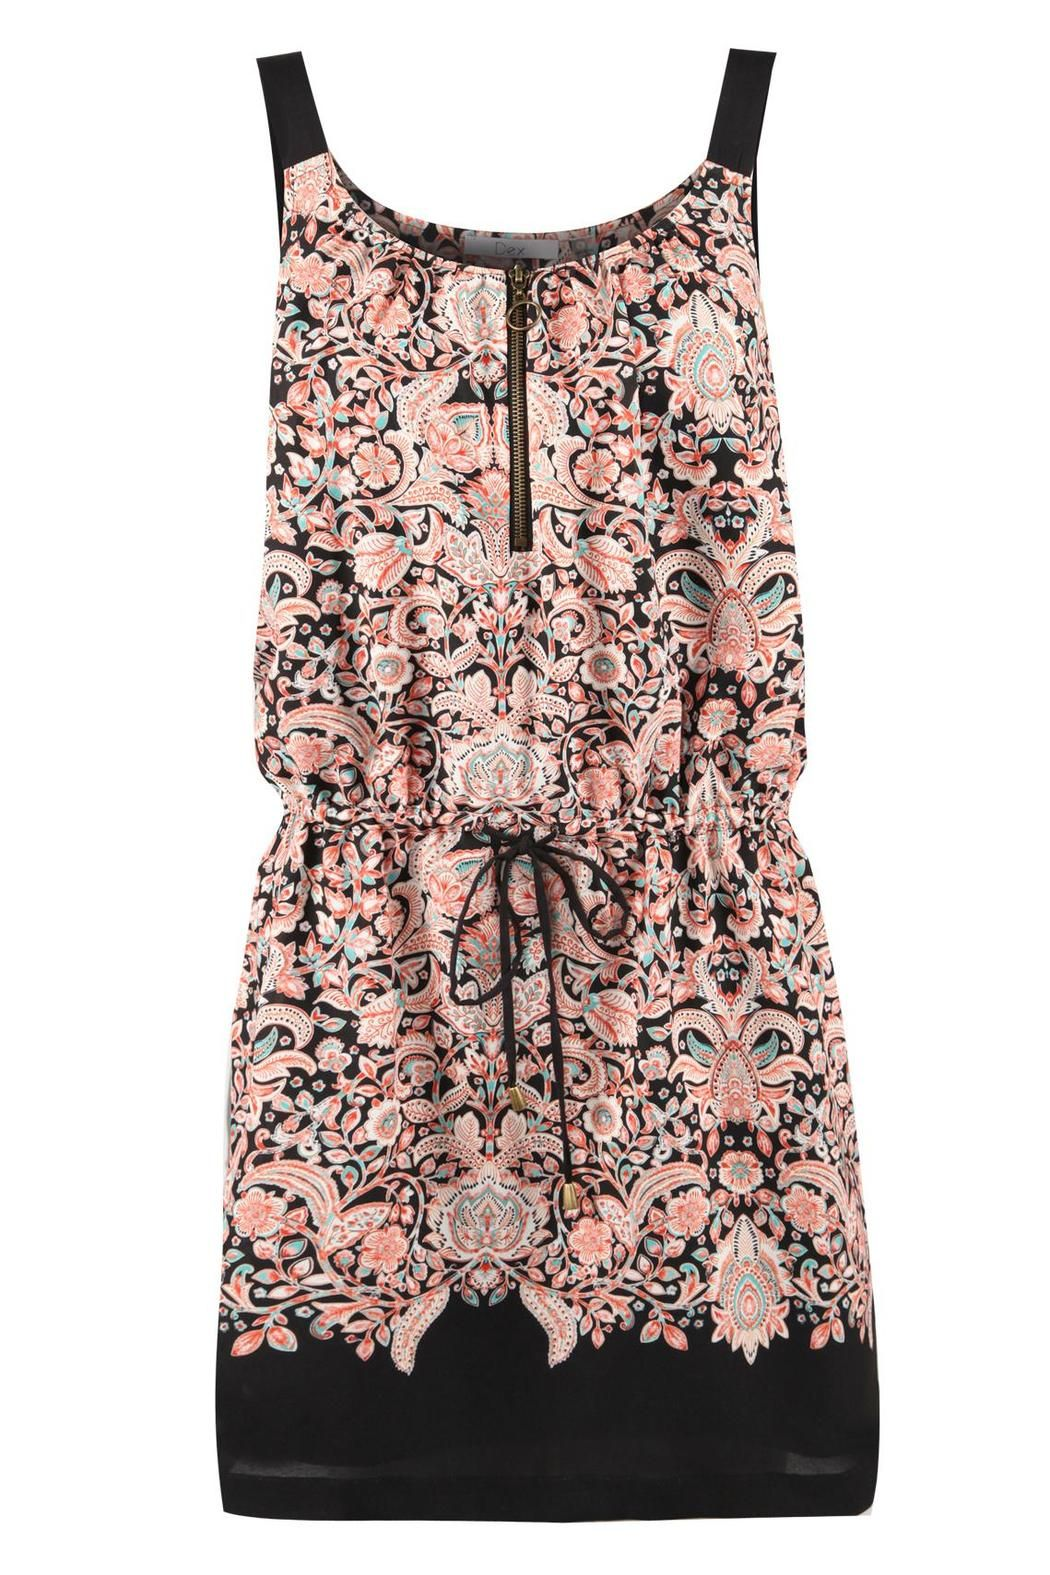 Sleeveless dress with a zipper front, self belt and floral print.   Floral Baroque Dress by AL Boutique. Clothing - Dresses - Casual Minnesota